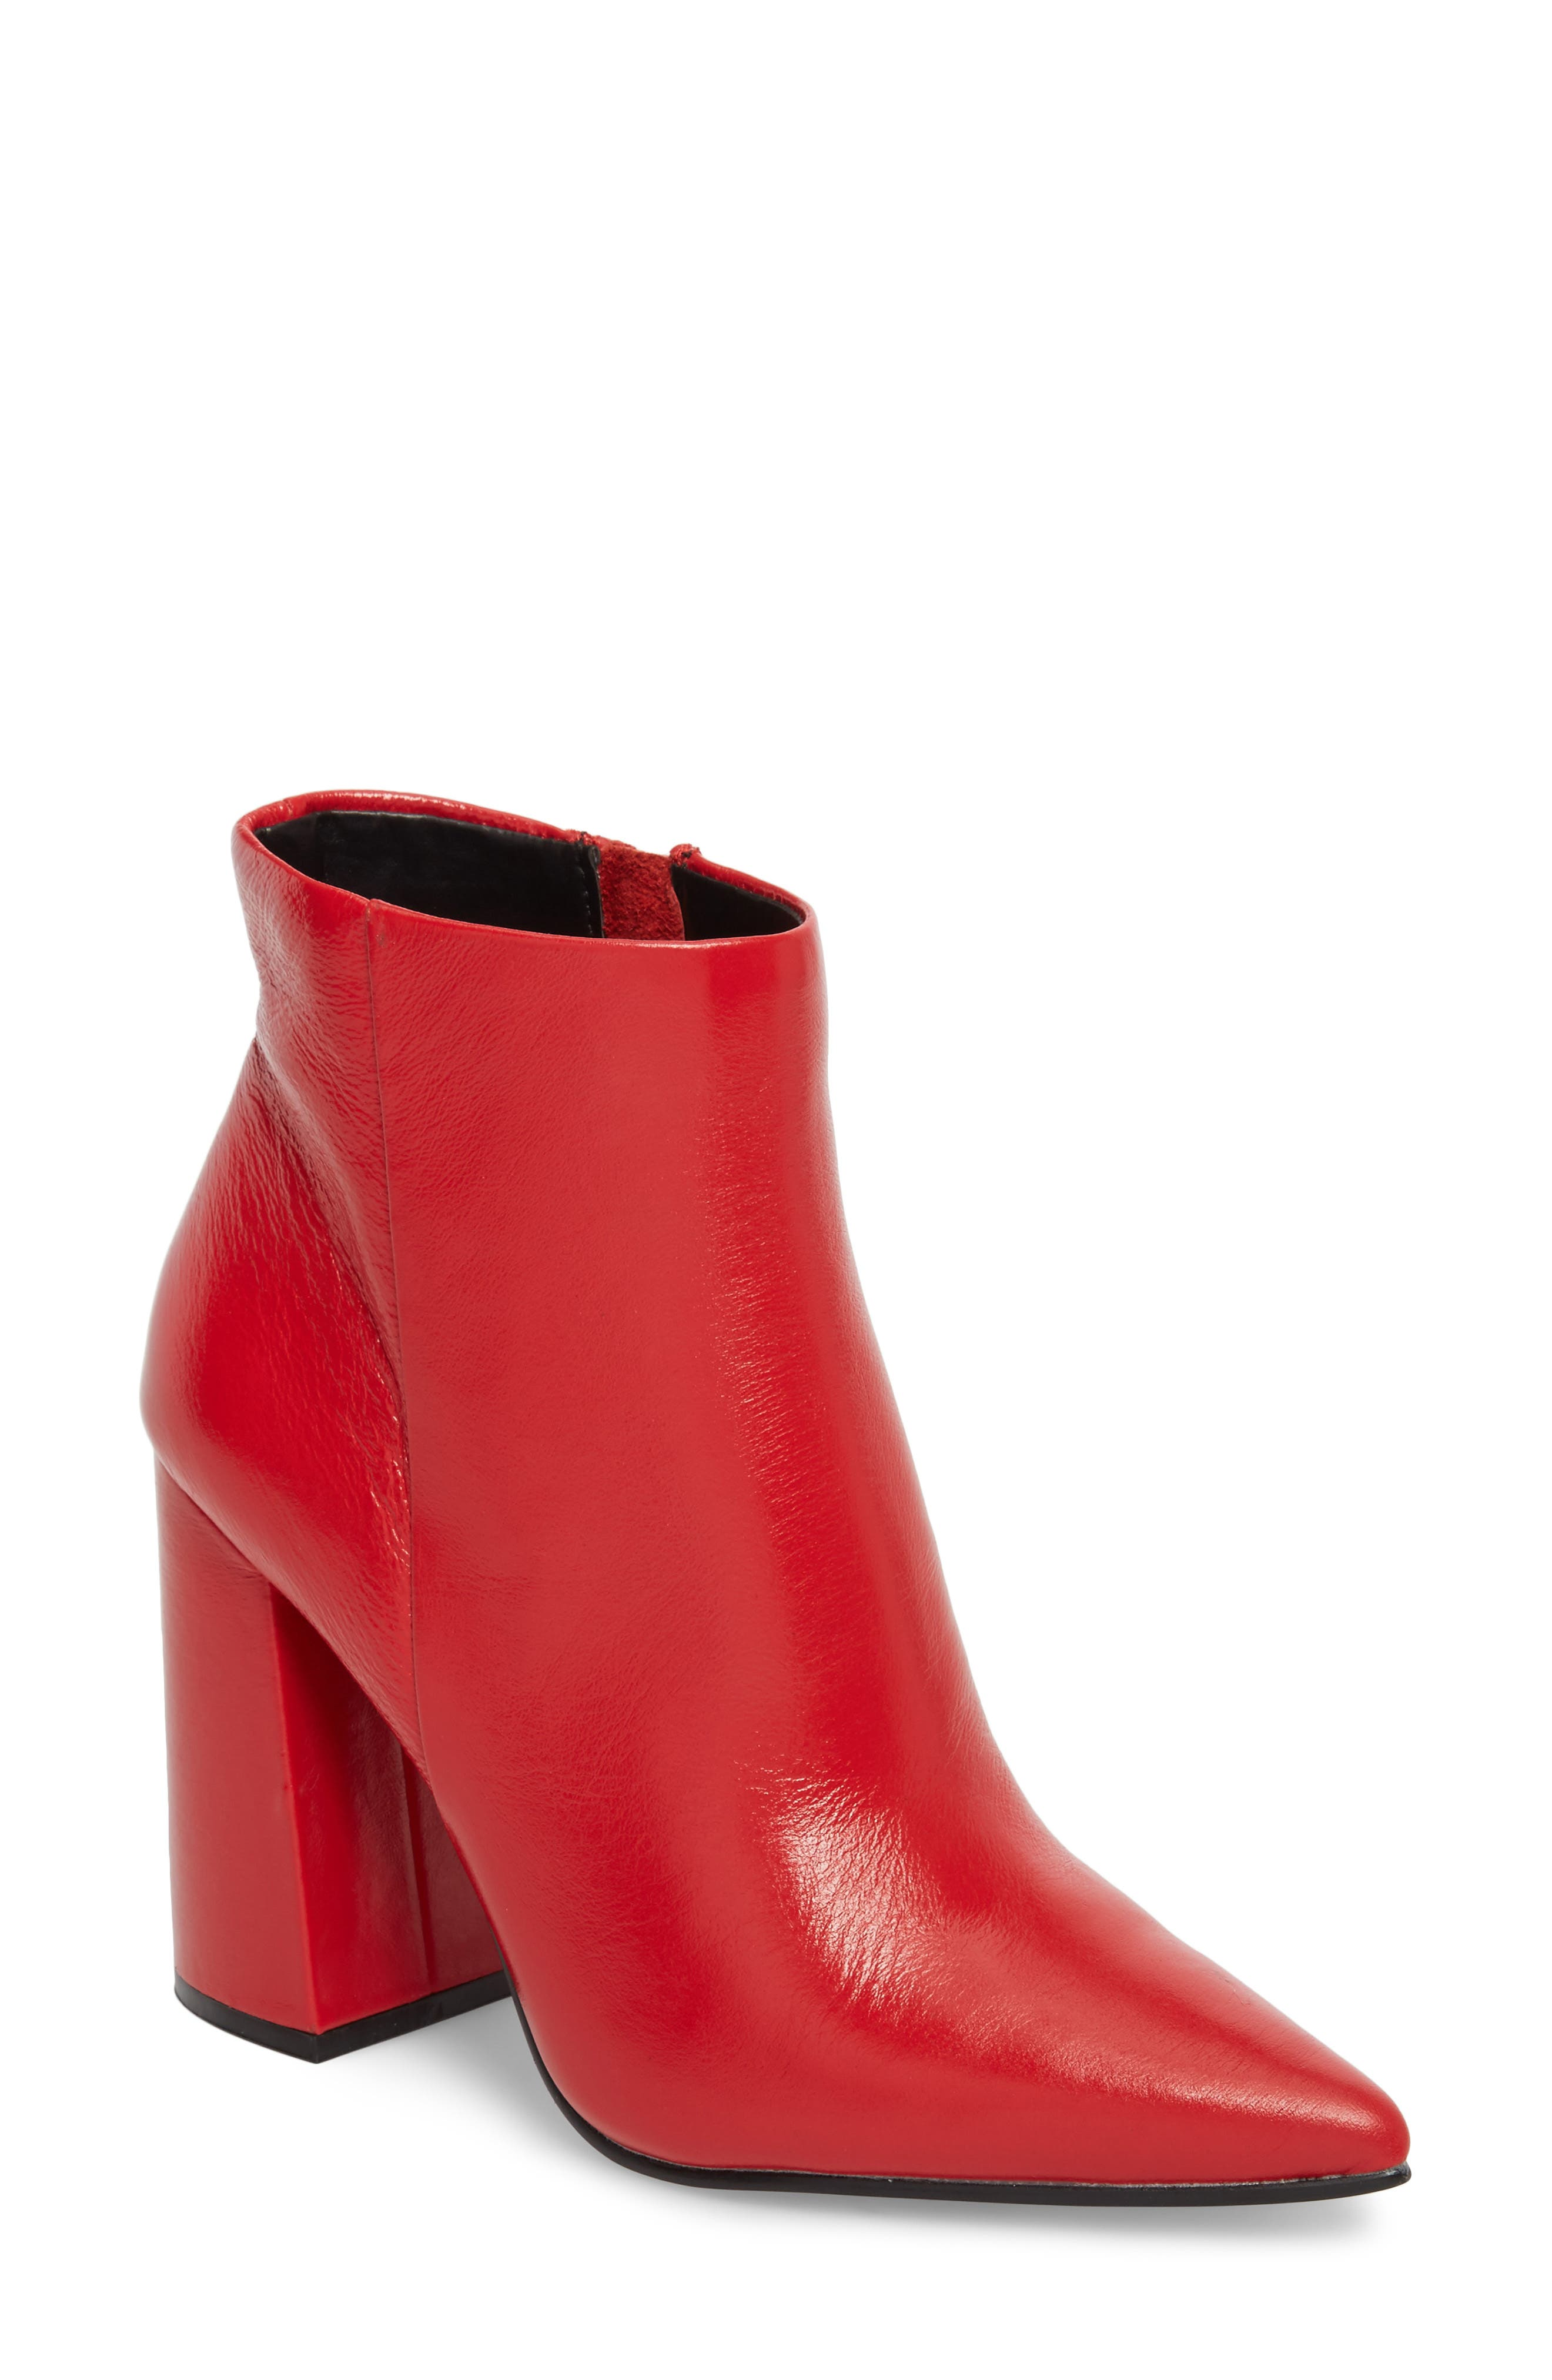 Justify Flared Heel Bootie,                             Main thumbnail 2, color,